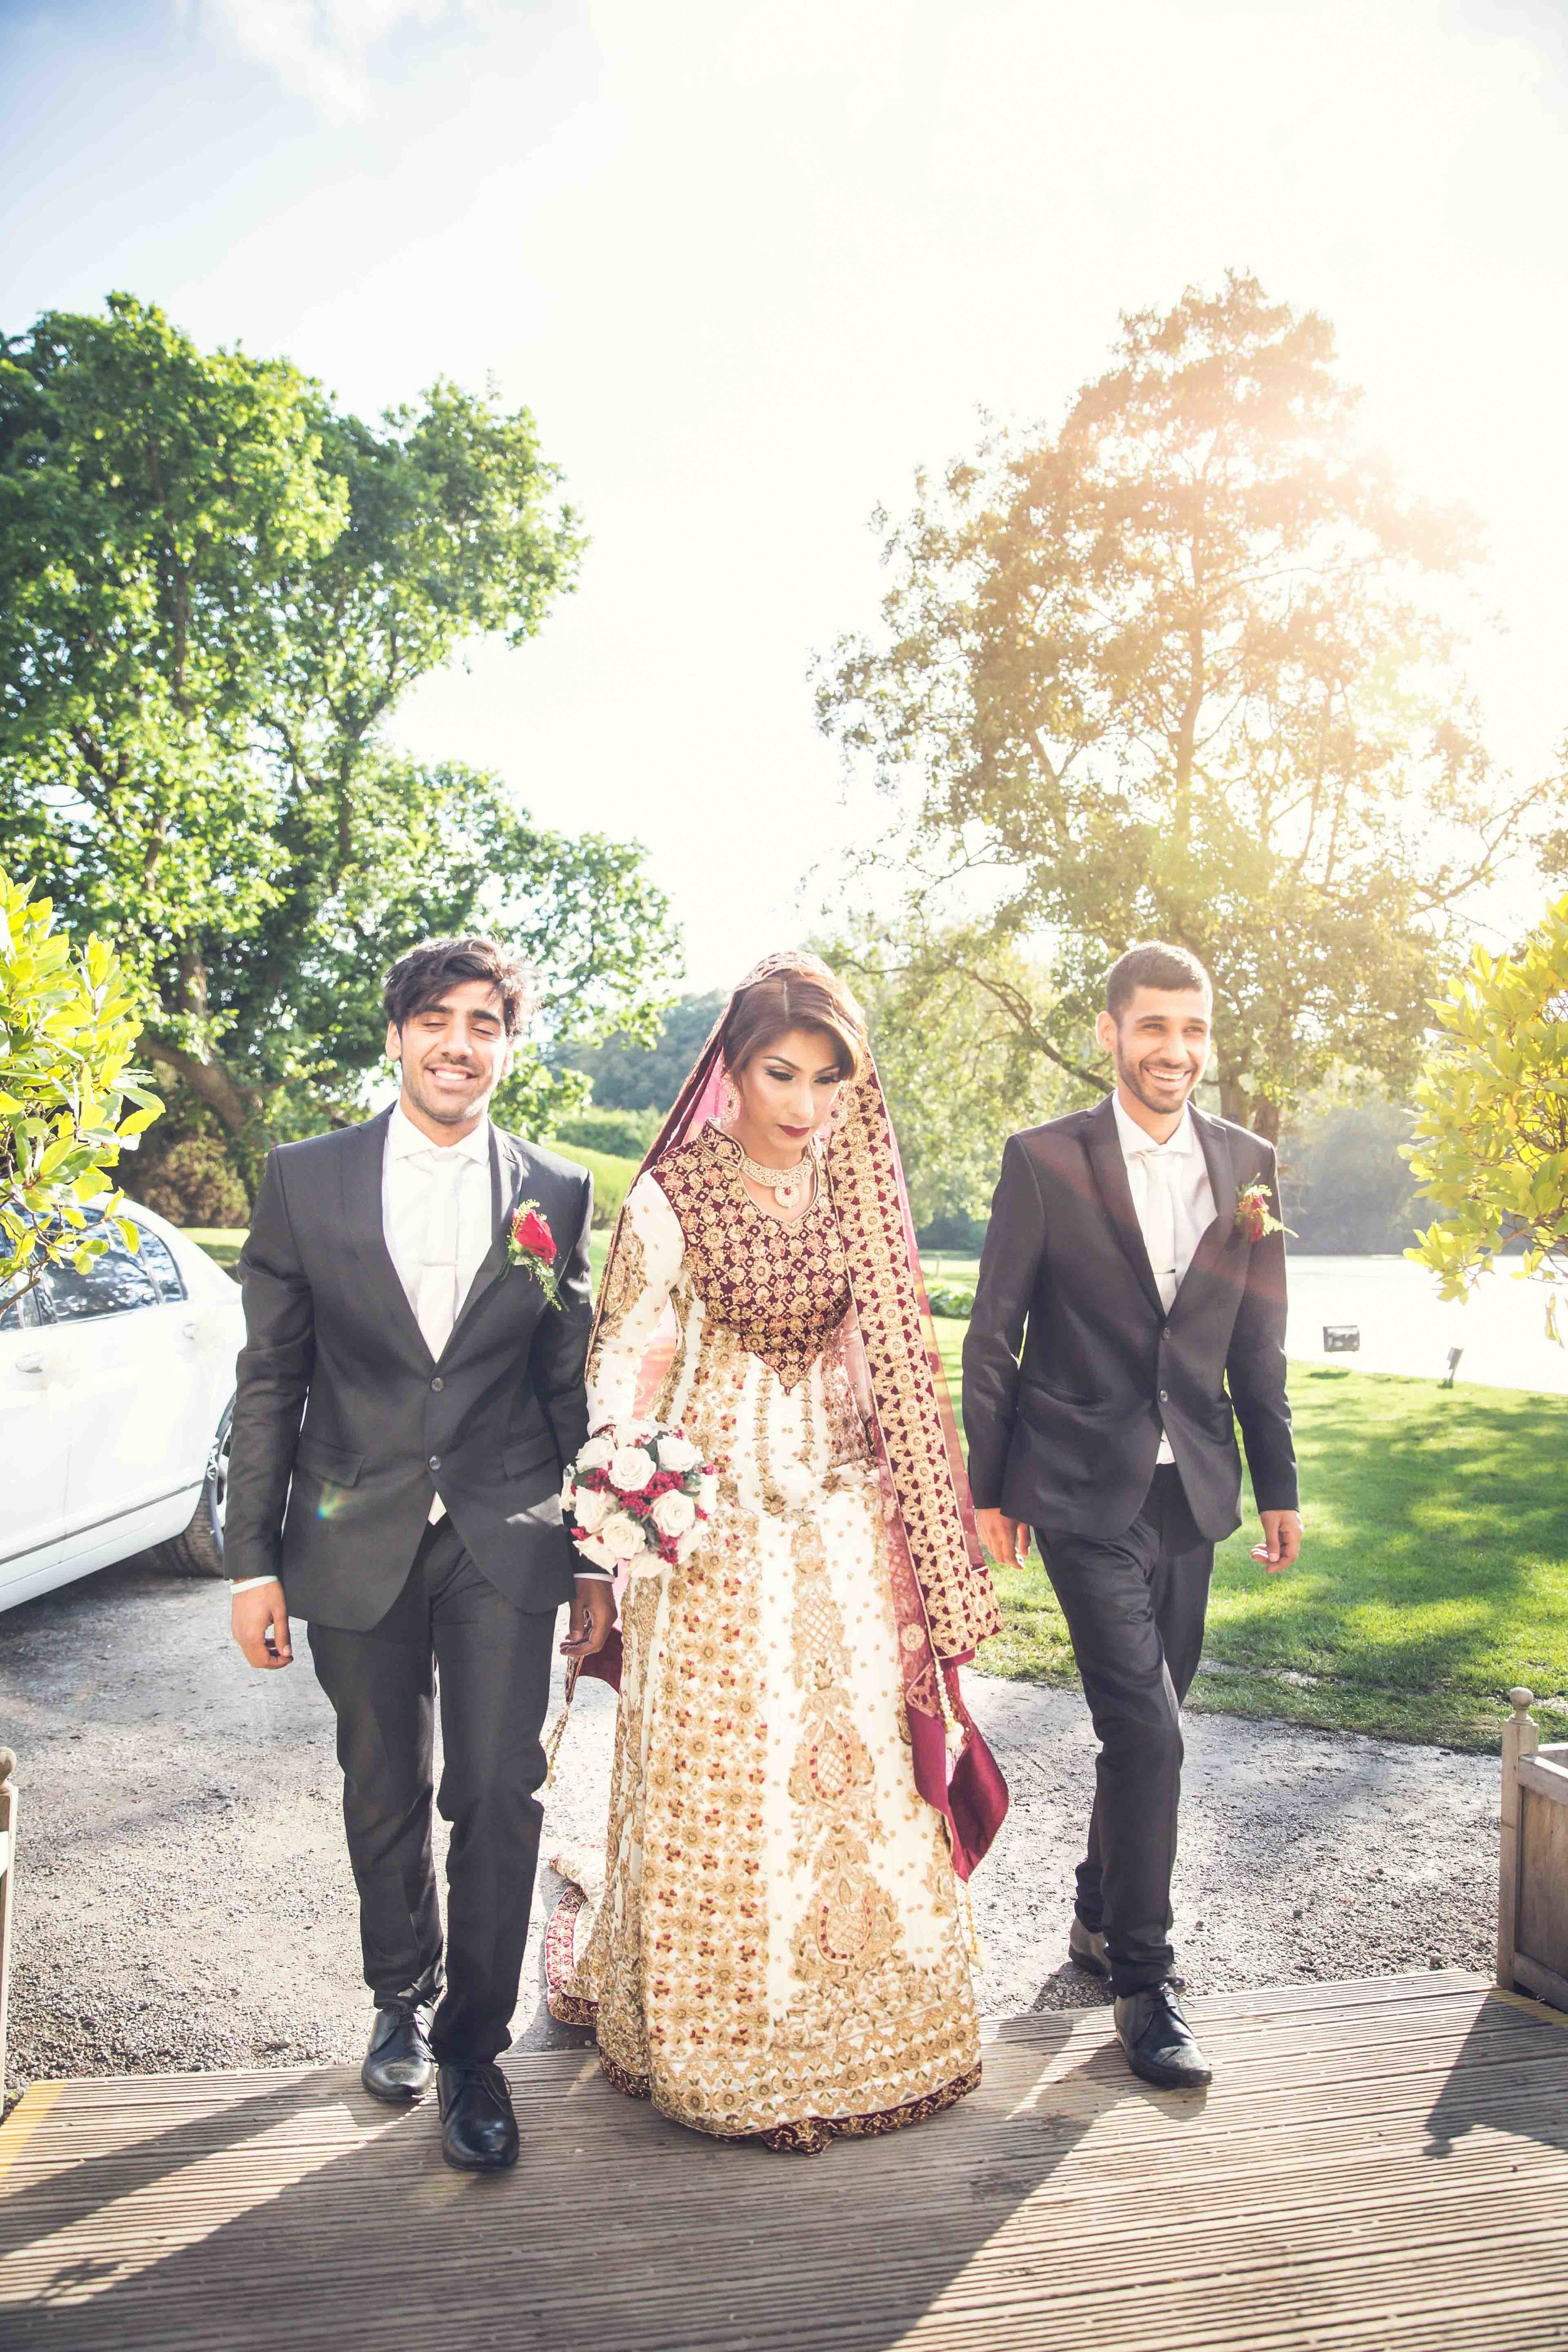 Opu Sultan Photography Asian wedding photography scotland edinburgh glasgow manchester birmingham london-184.jpg